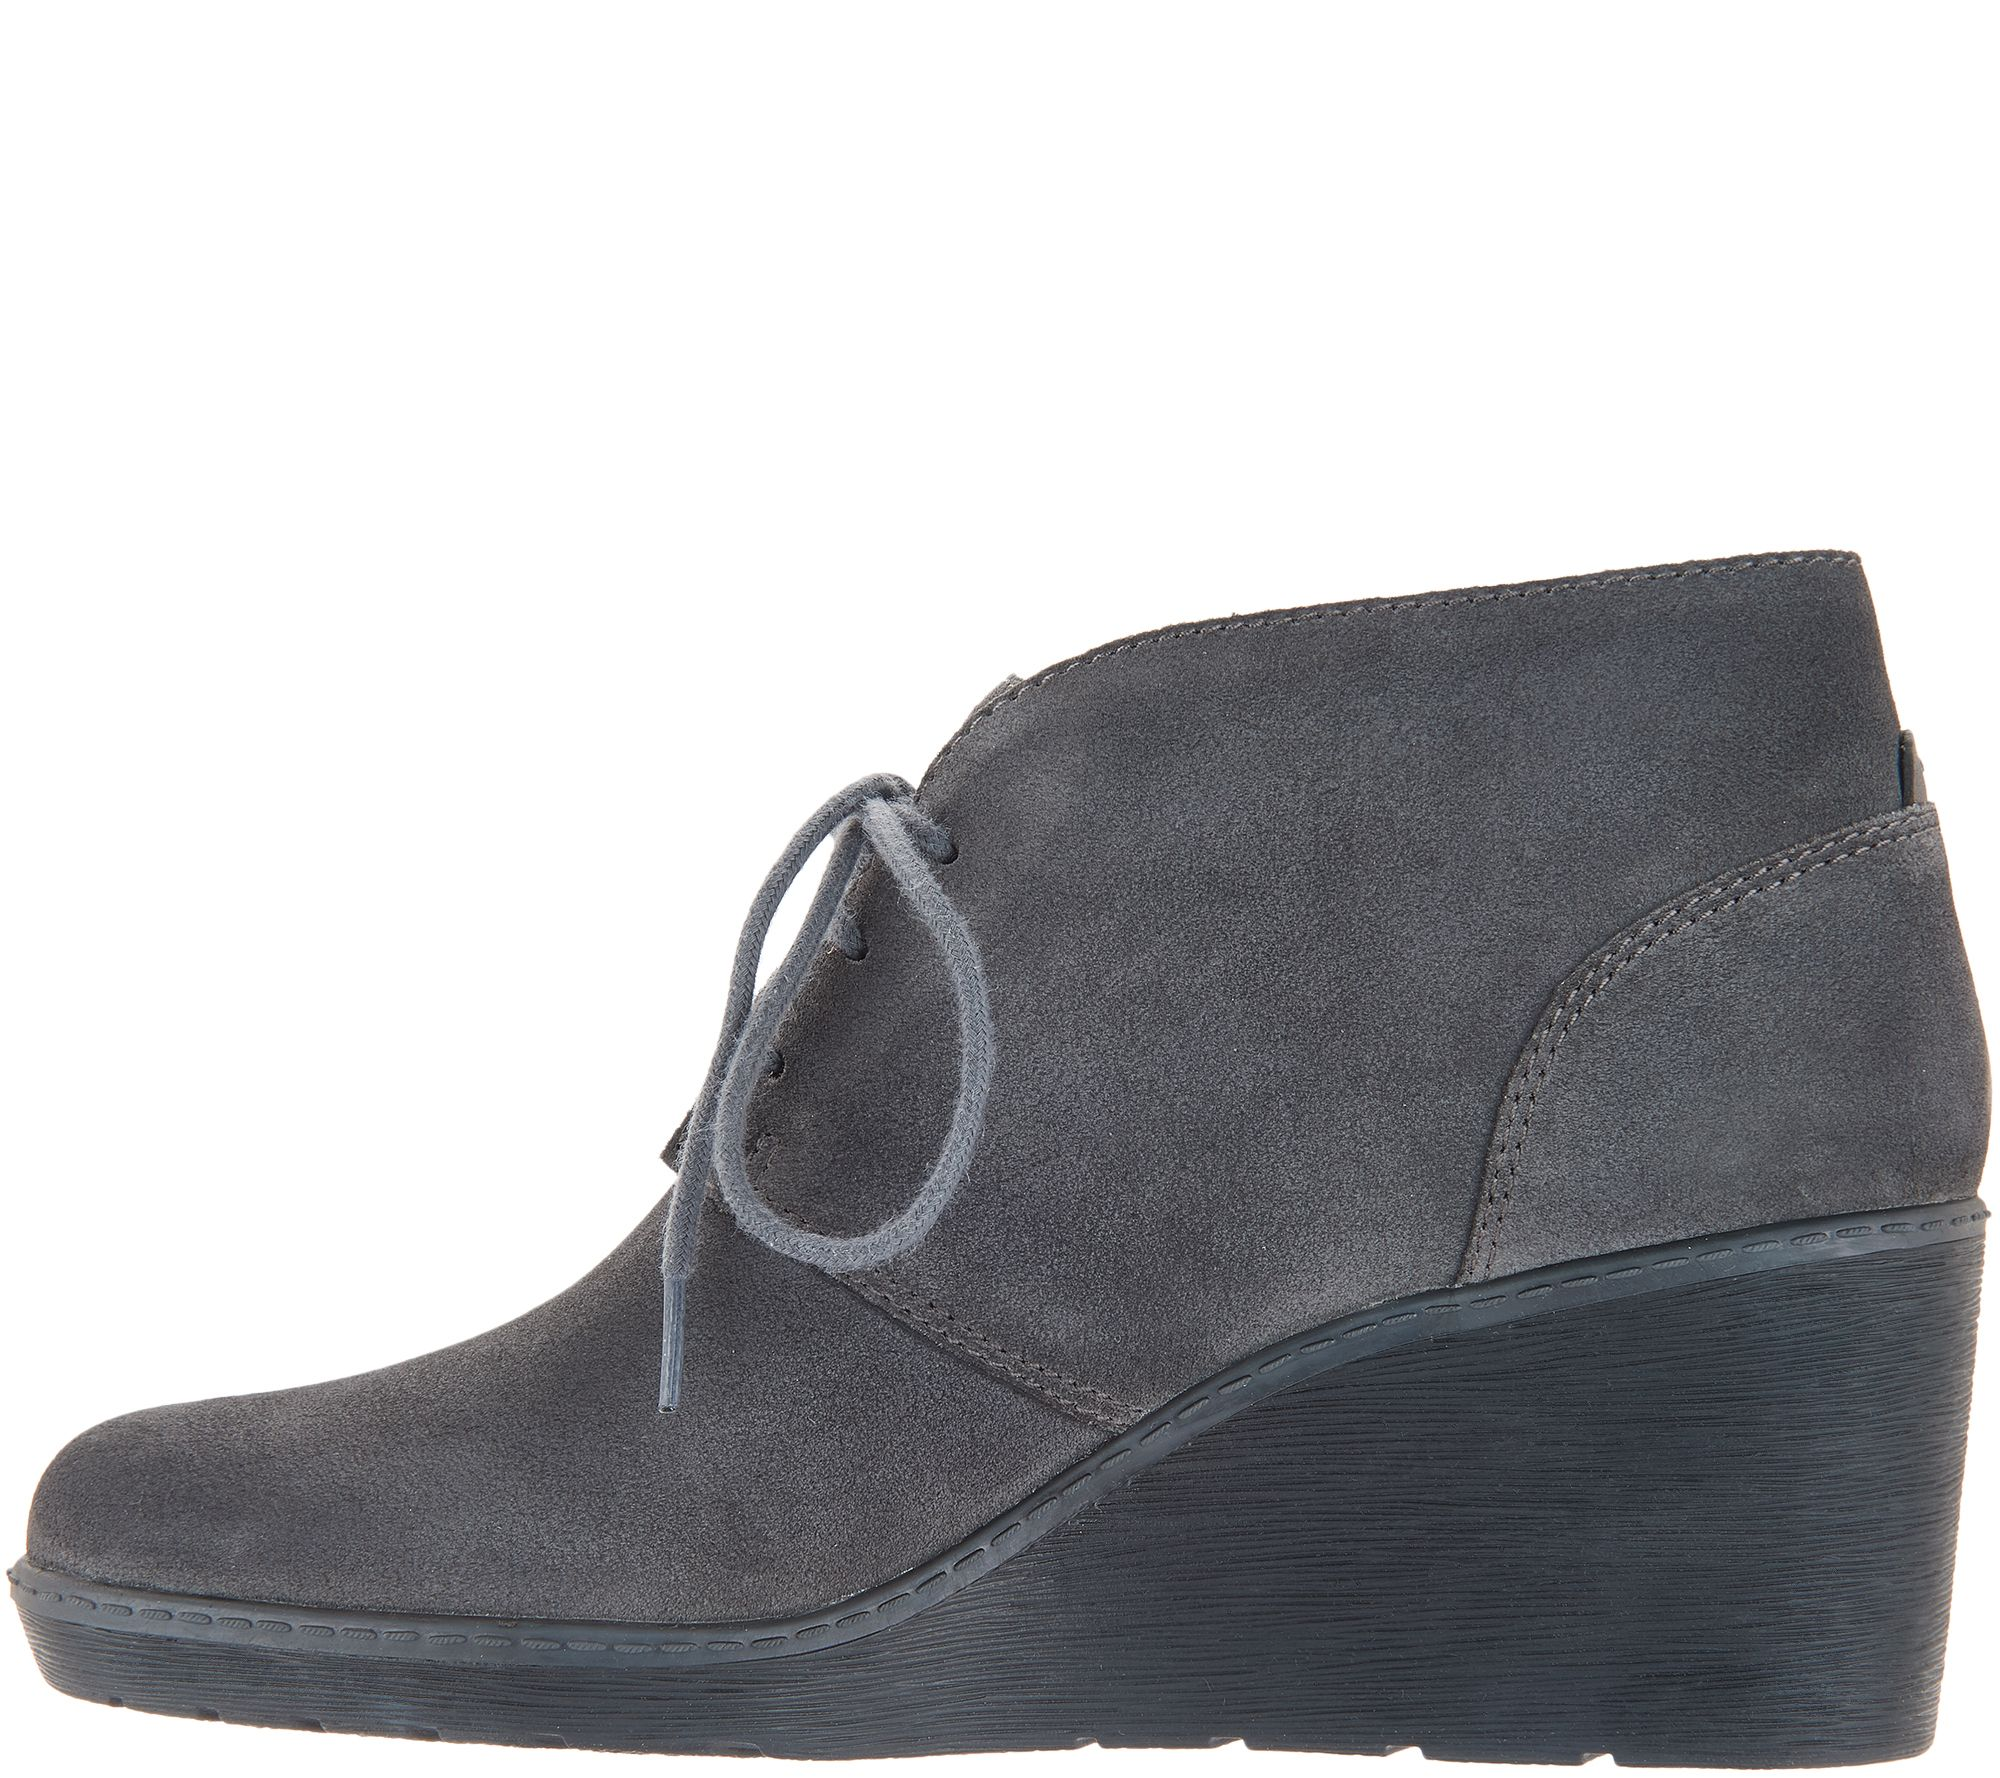 725717ead01 Clarks Suede Lace-Up Wedge Booties - Hazen Charm - Page 1 — QVC.com